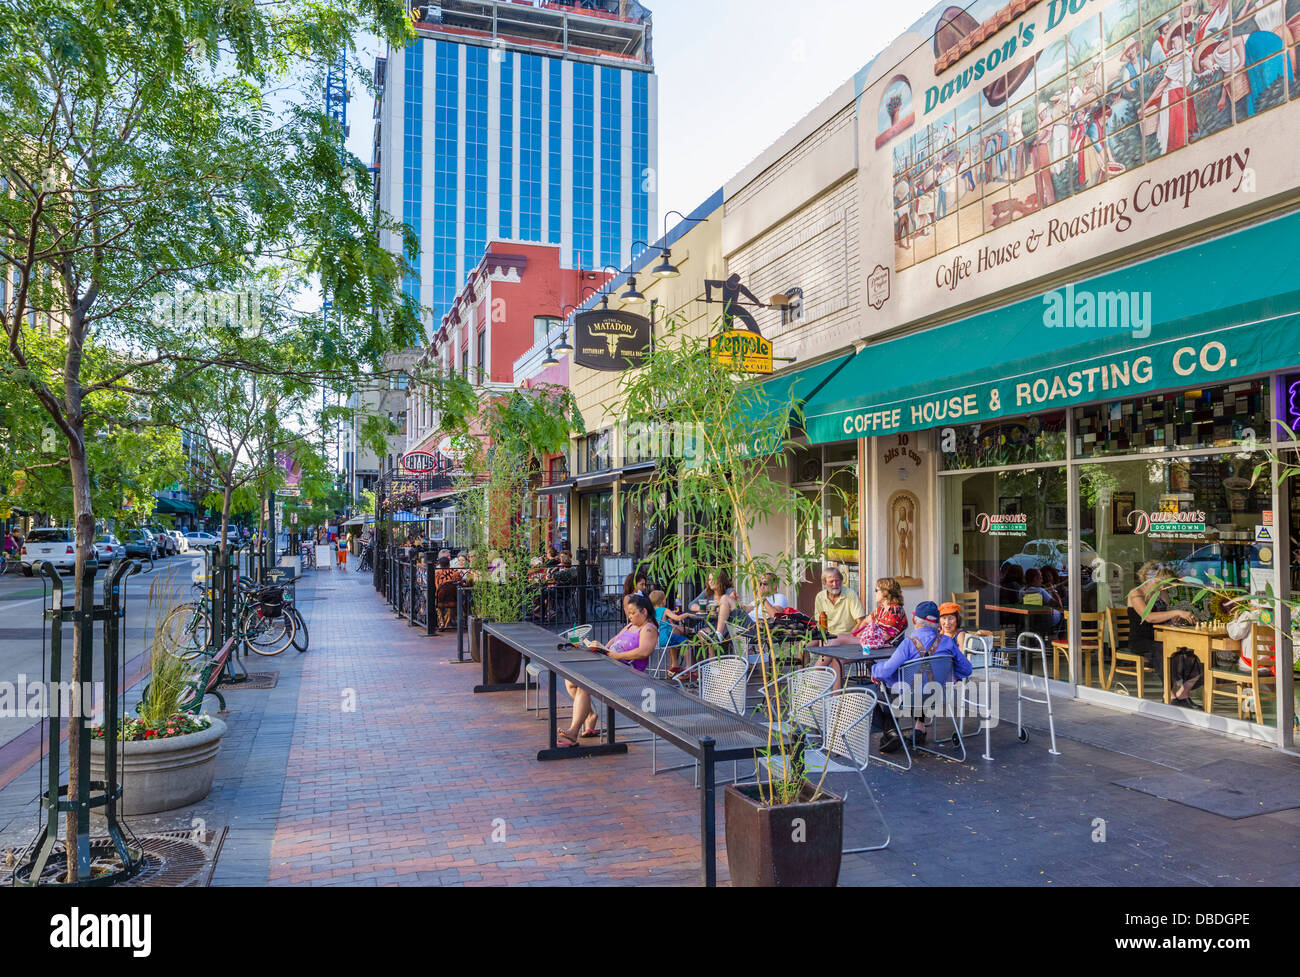 Sidewalk cafe on N 8th Street in the early evening, historic downtown Boise, Idaho, USA - Stock Image